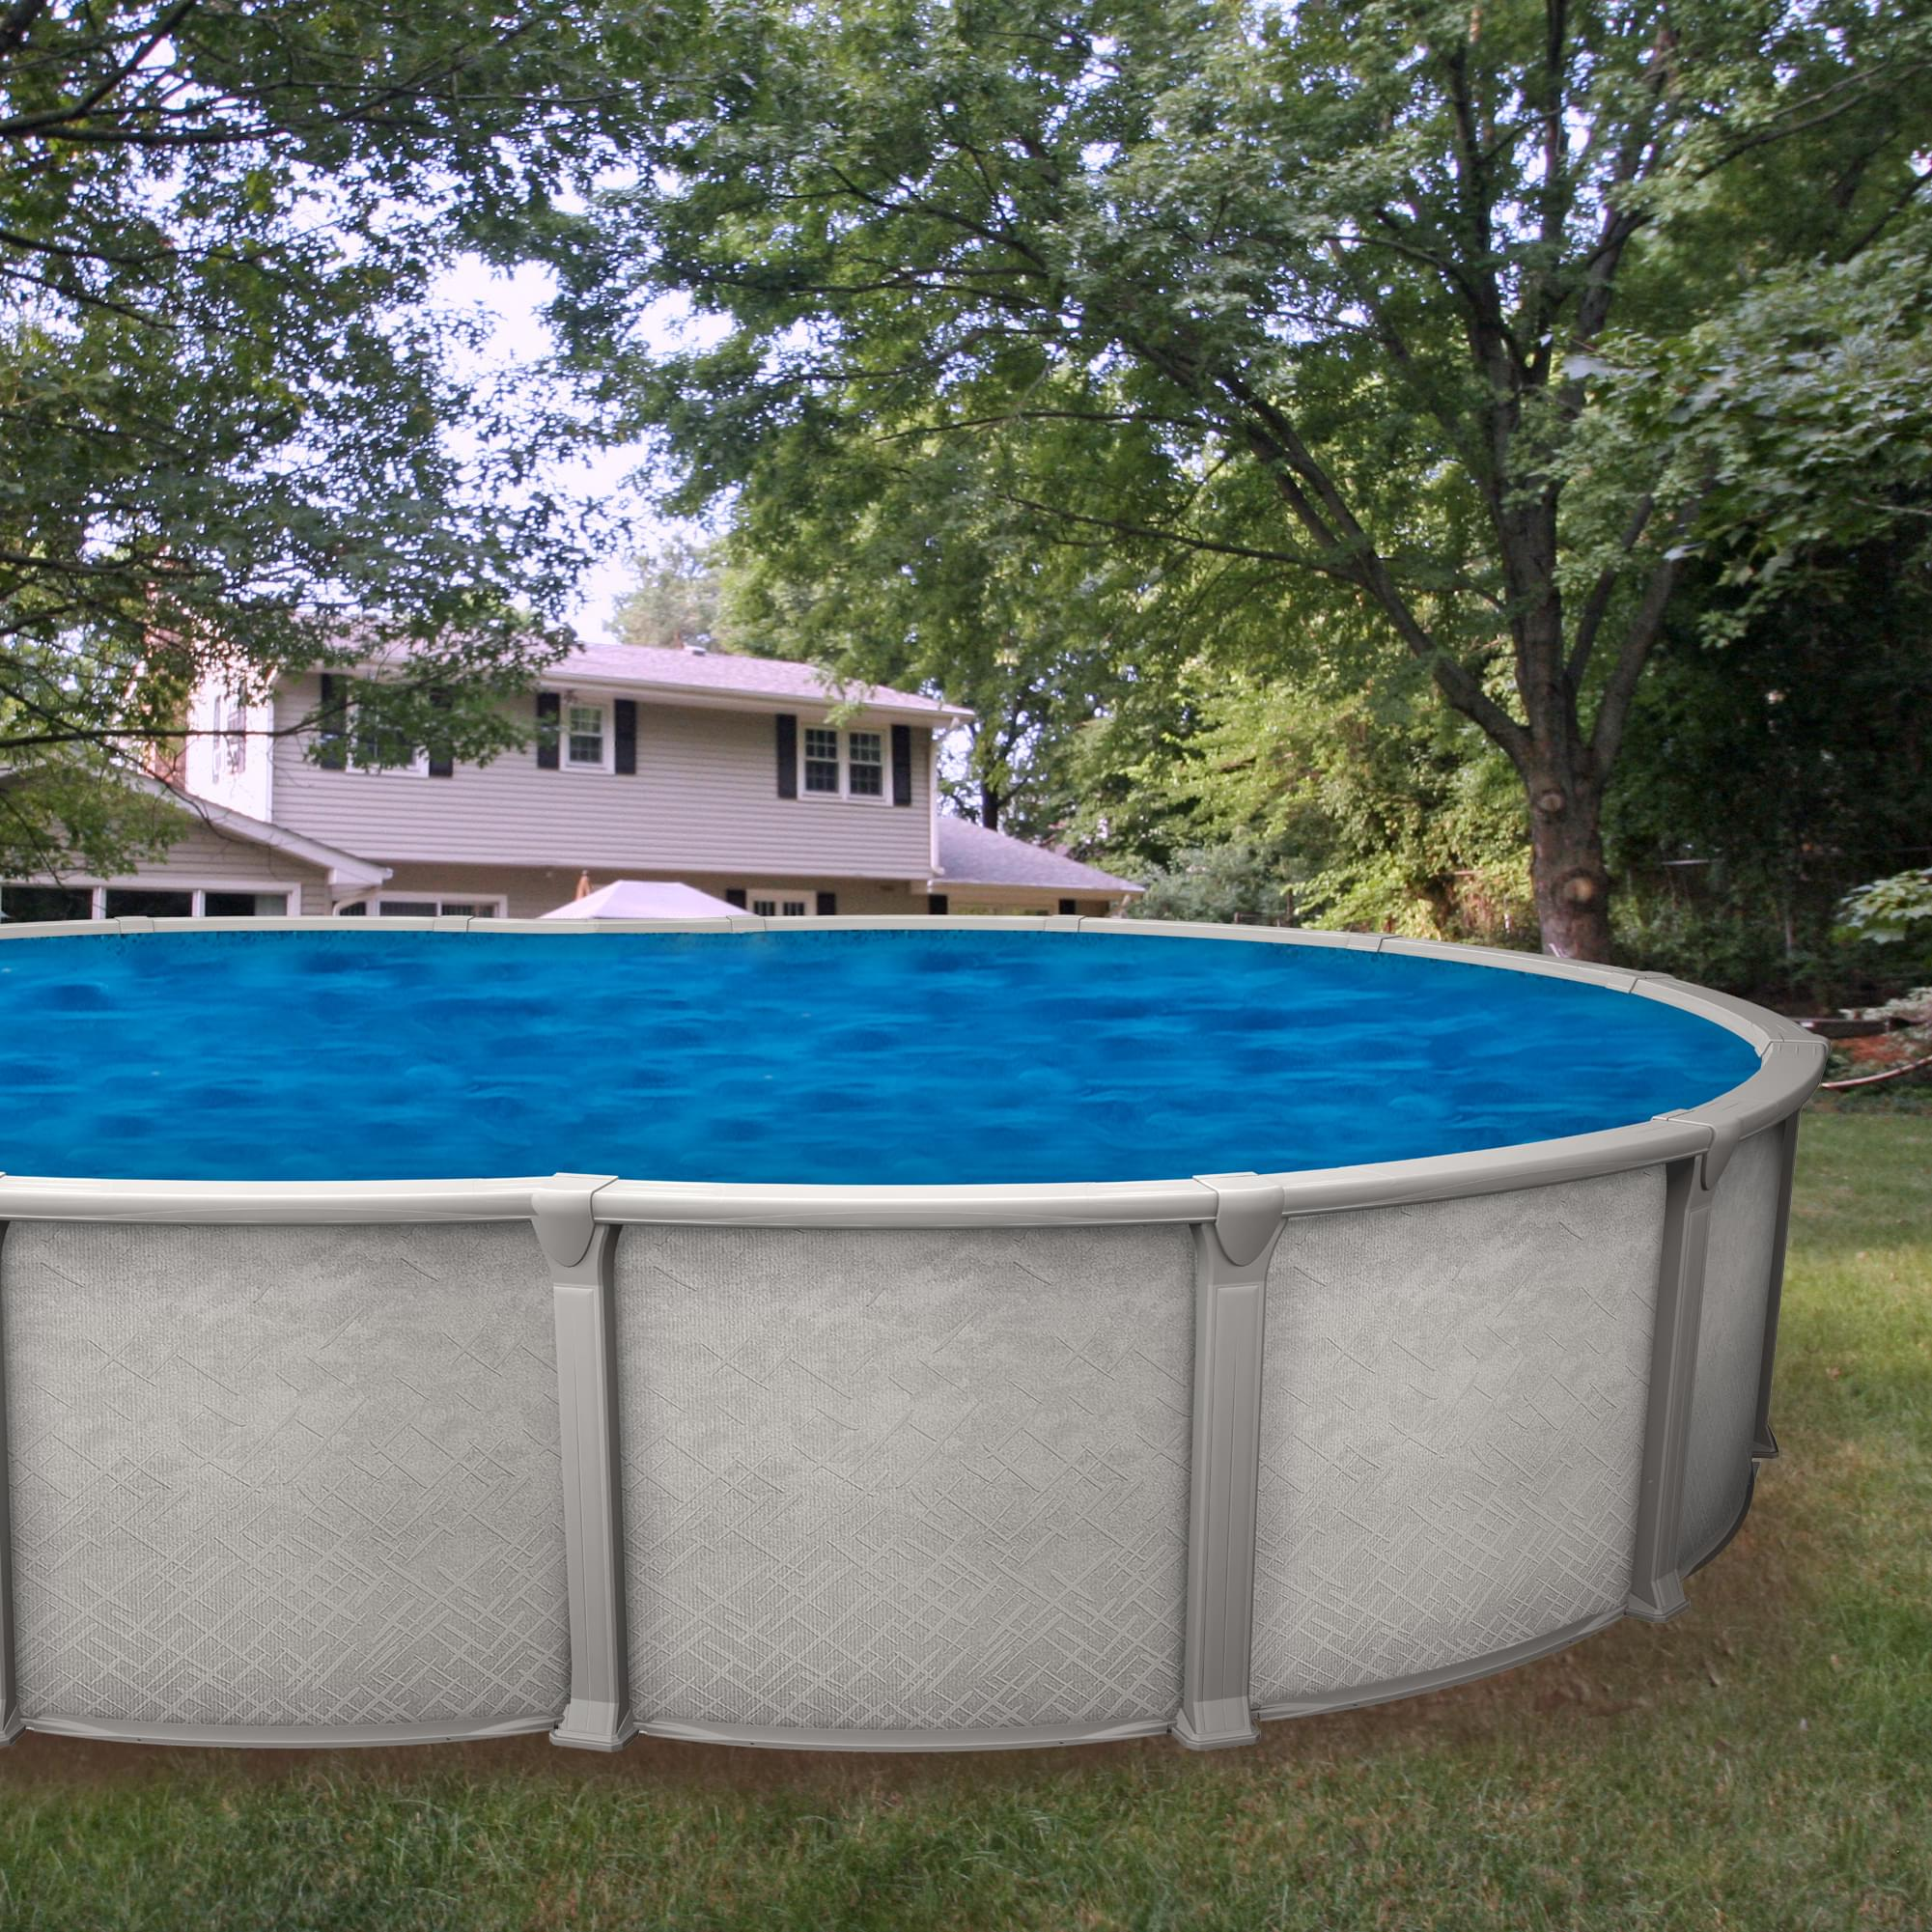 Galaxy 18 x 33 pied ovale piscine ho magasin de piscine for Piscine 33